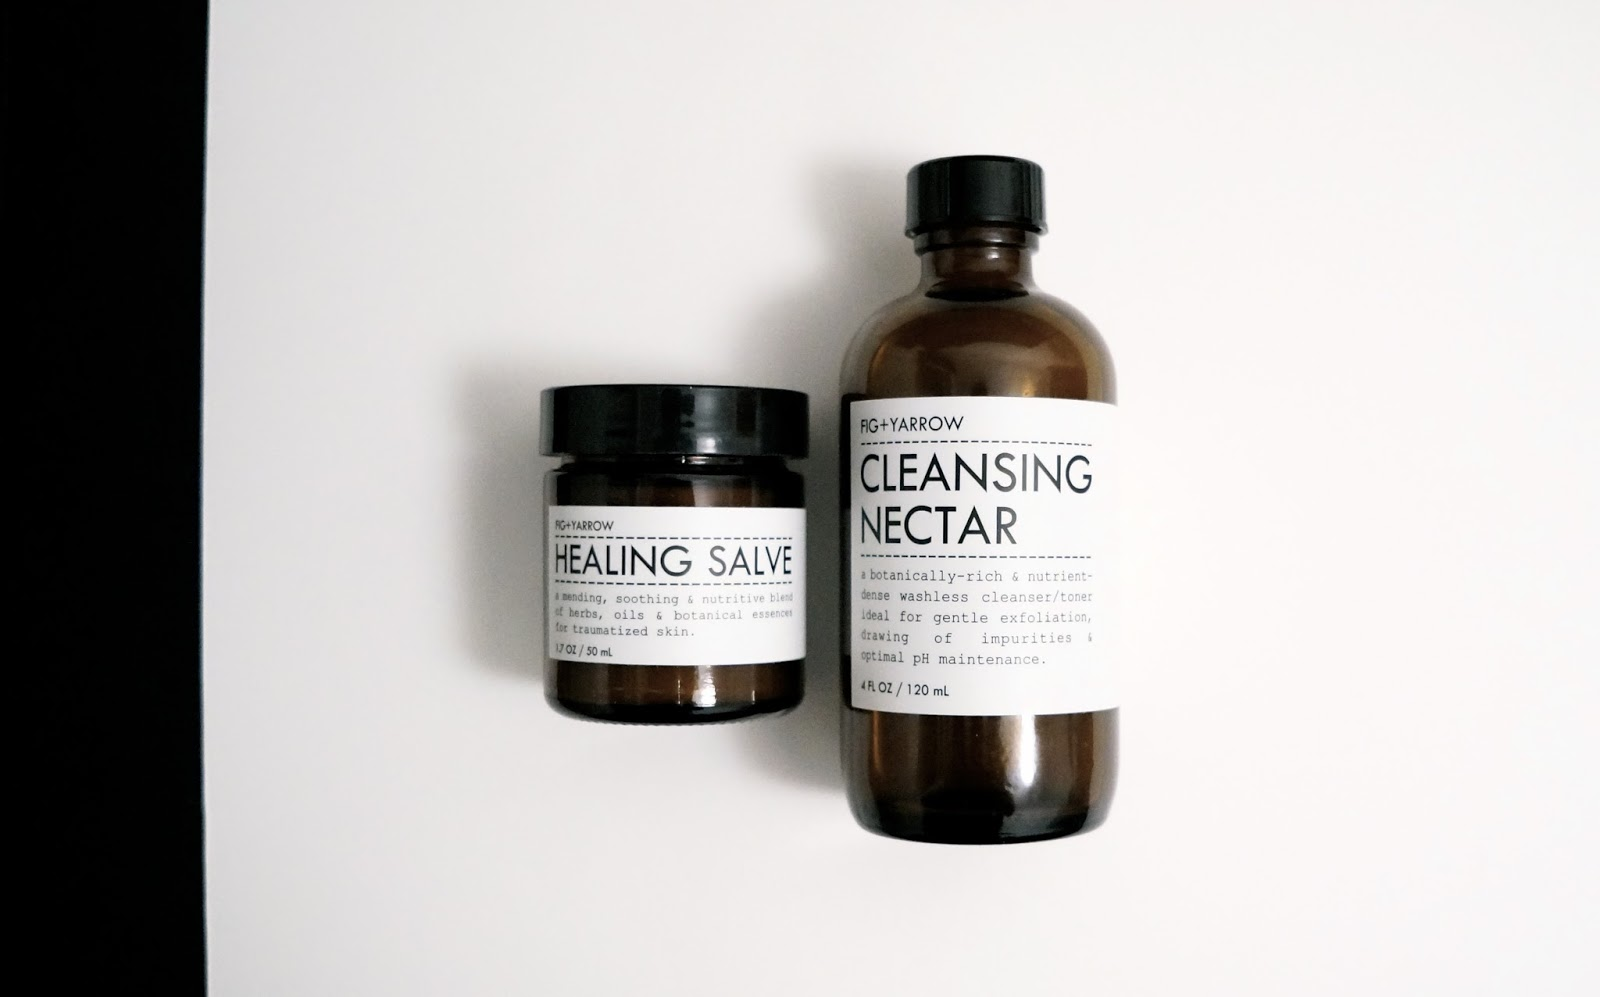 FIG+YARROW Healing Salve Cleansing Nectar Antelope Shop boutique lexie Blush